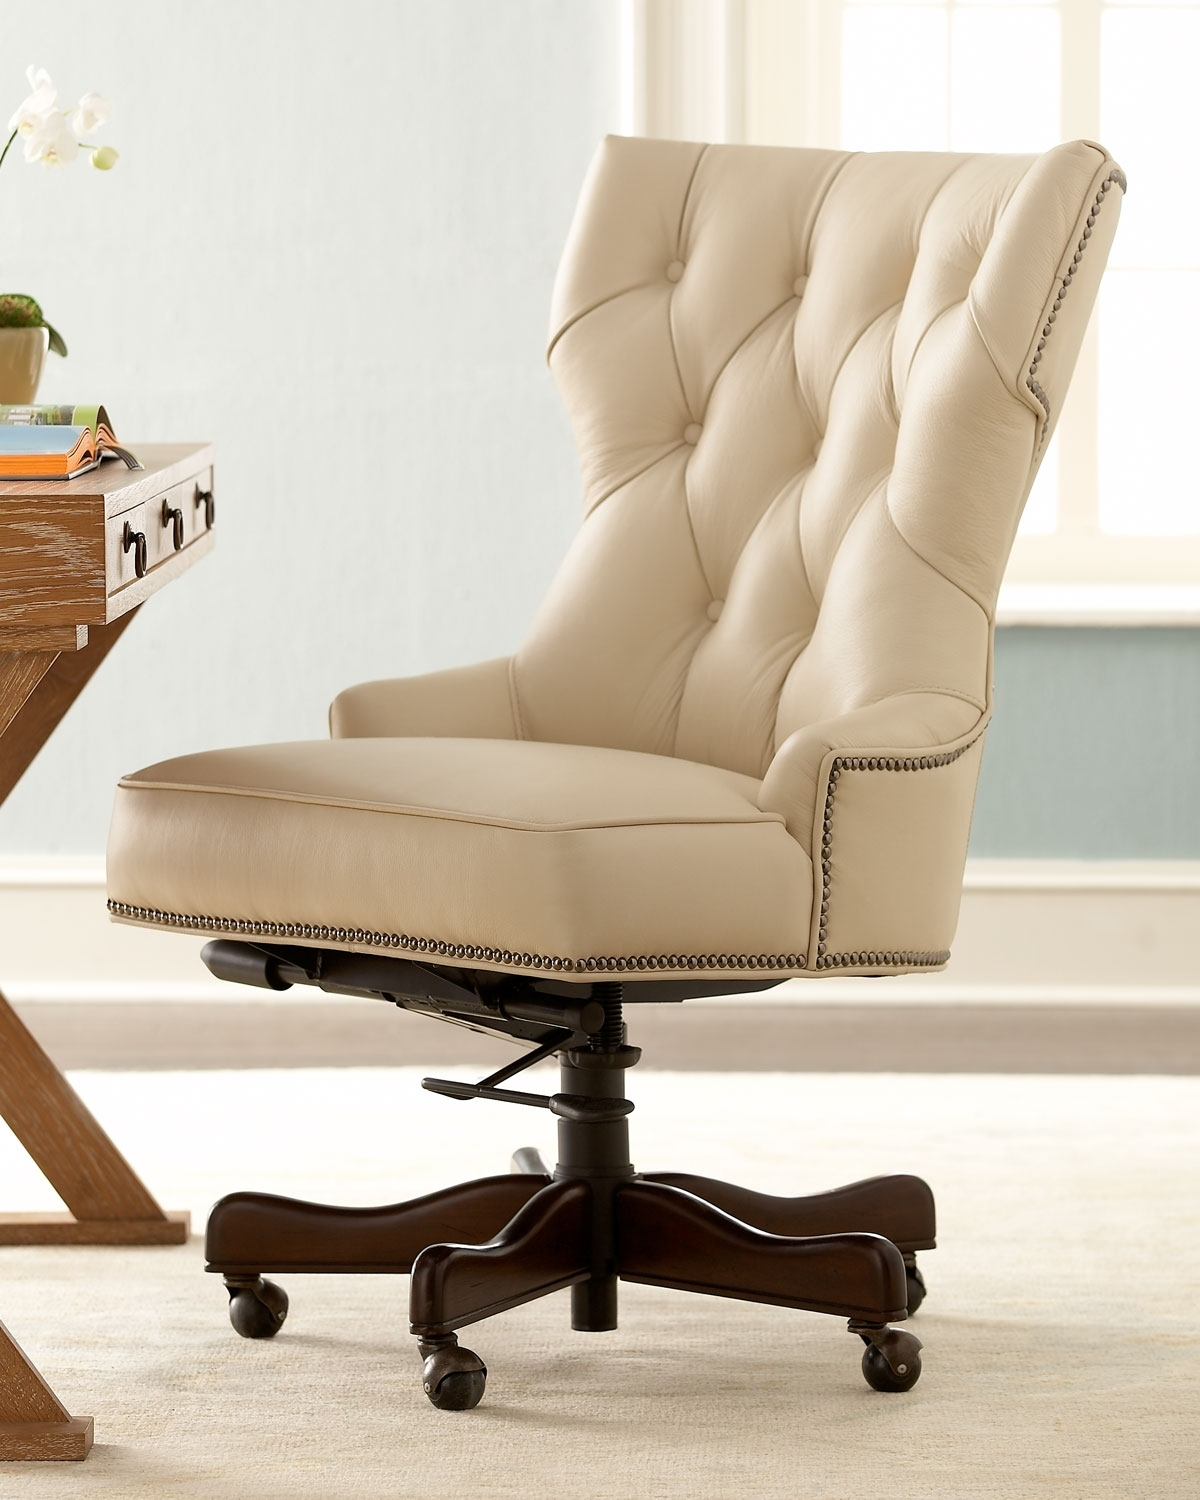 Neiman Marcus Within 2019 Nailhead Executive Office Chairs (View 14 of 20)